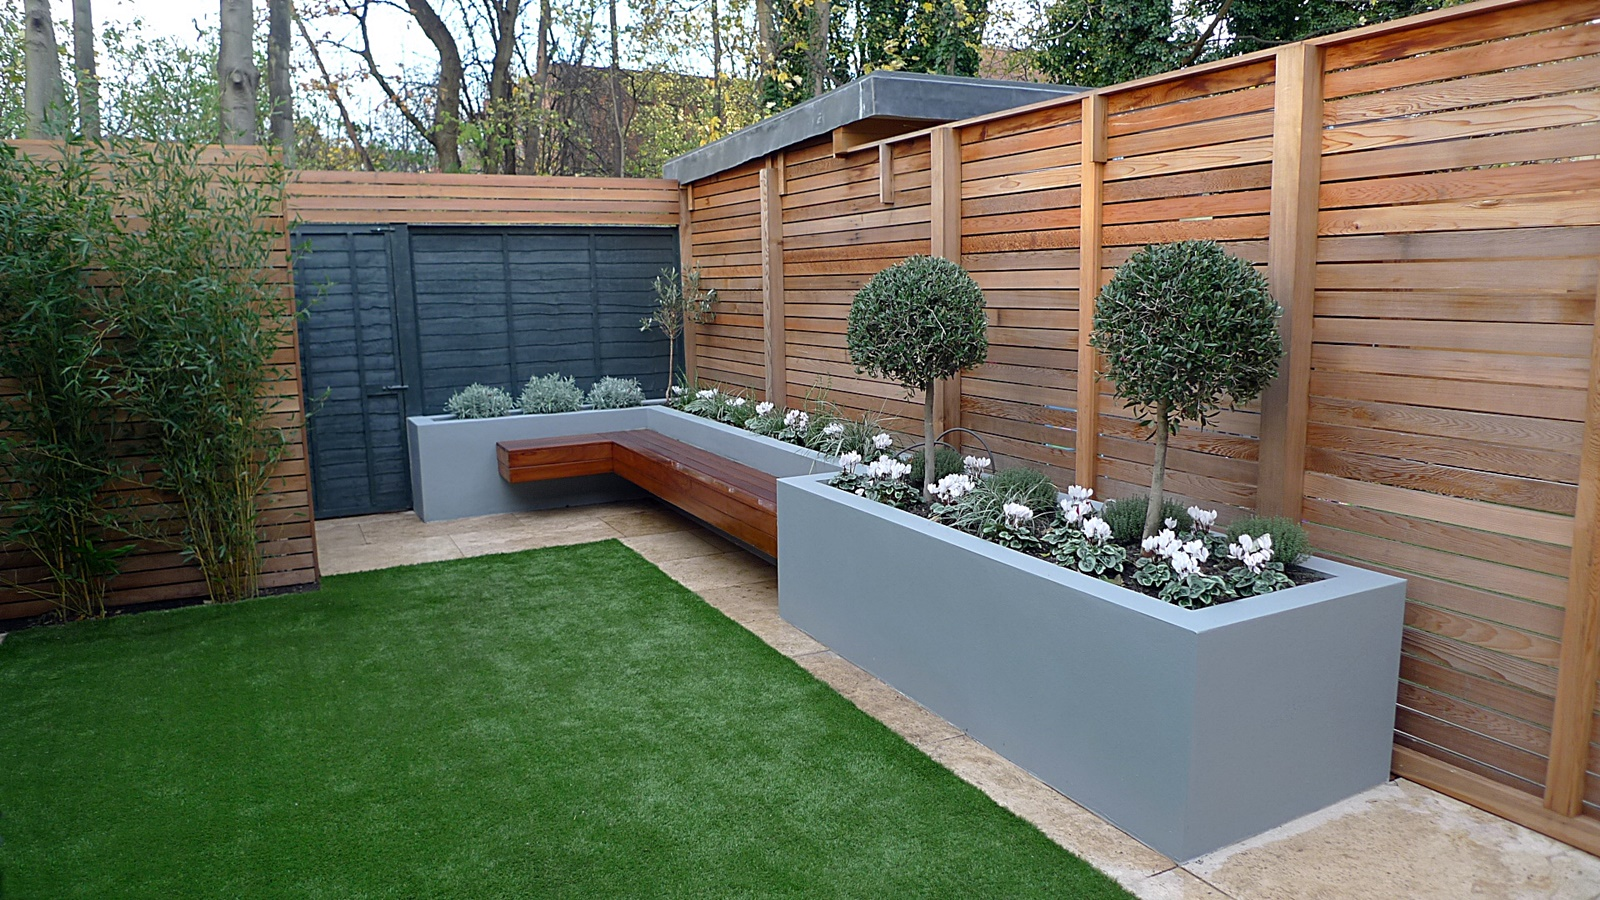 modern garden design small london cedar screen grey raised bed artificial grass cream paving. Black Bedroom Furniture Sets. Home Design Ideas